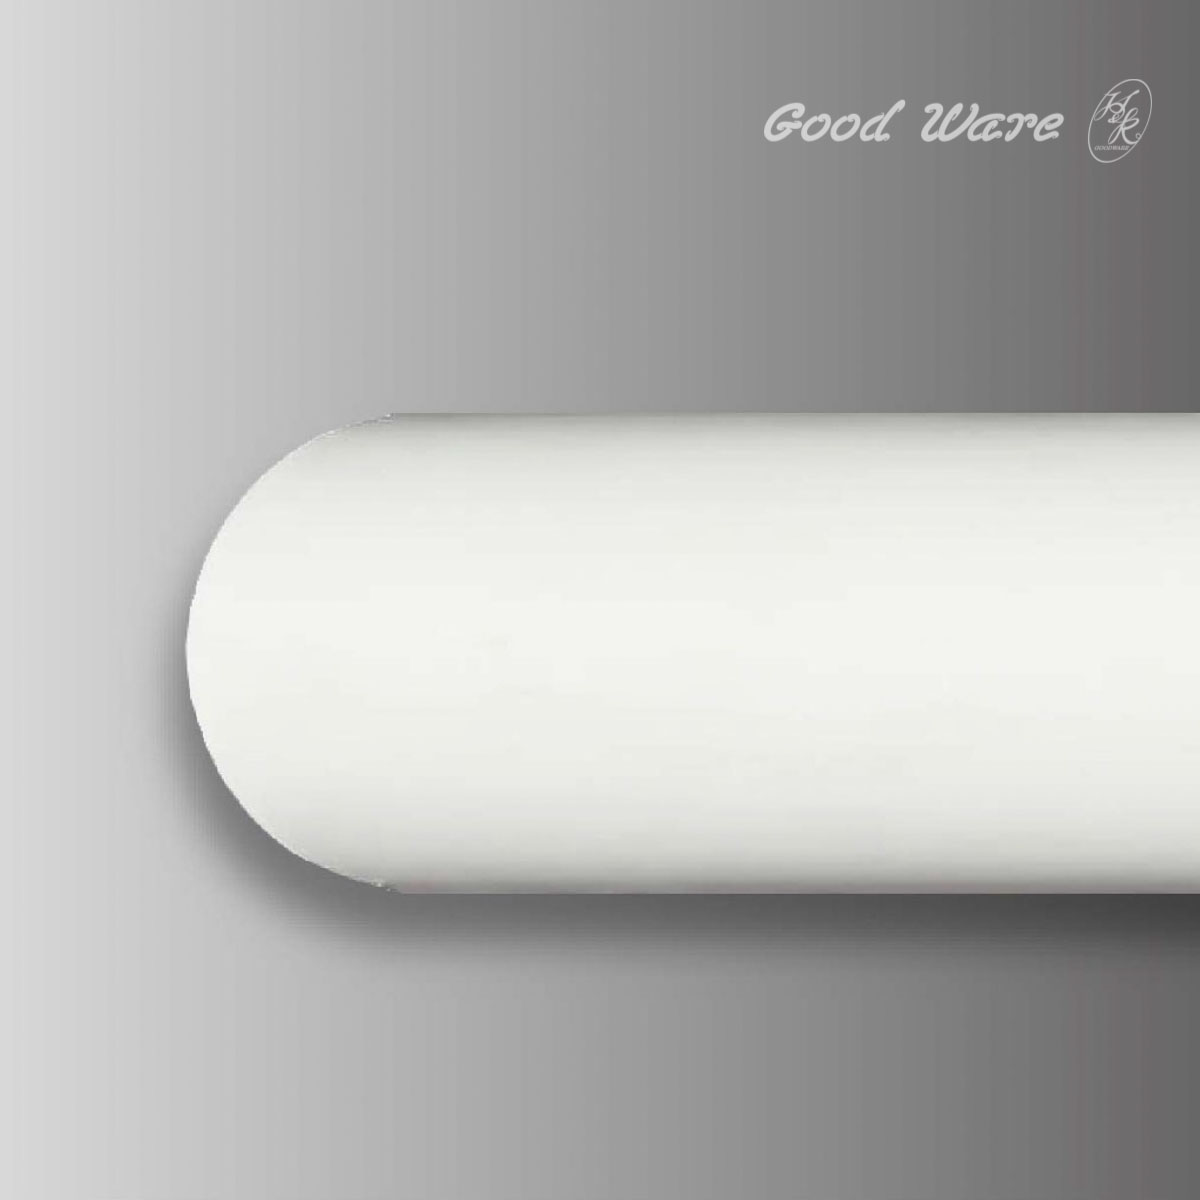 Architectural flexible half round moulding